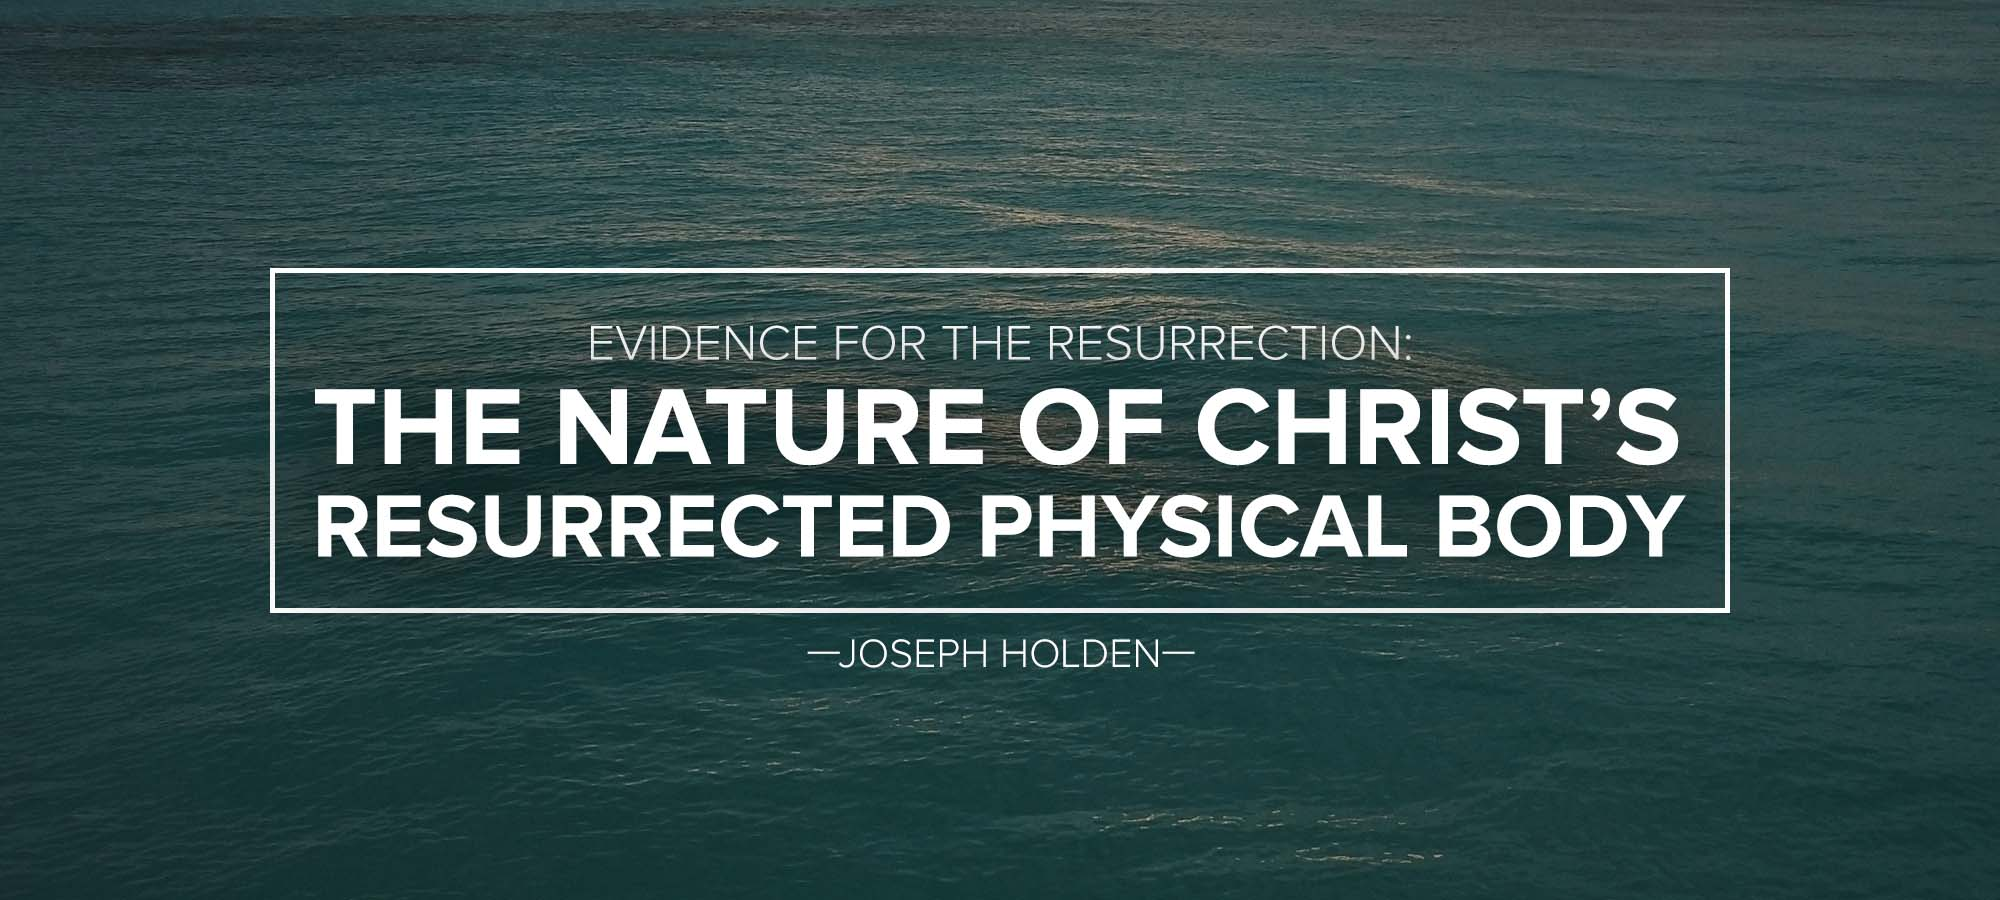 an analysis of bodily resurrection and corinthians Answer: the bodily resurrection of jesus christ is the most important event in history, providing irrefutable evidence that jesus is who he claimed to be - the son of god the resurrection was not only the supreme validation of his deity it also validated the scriptures, which foretold his coming and resurrection.